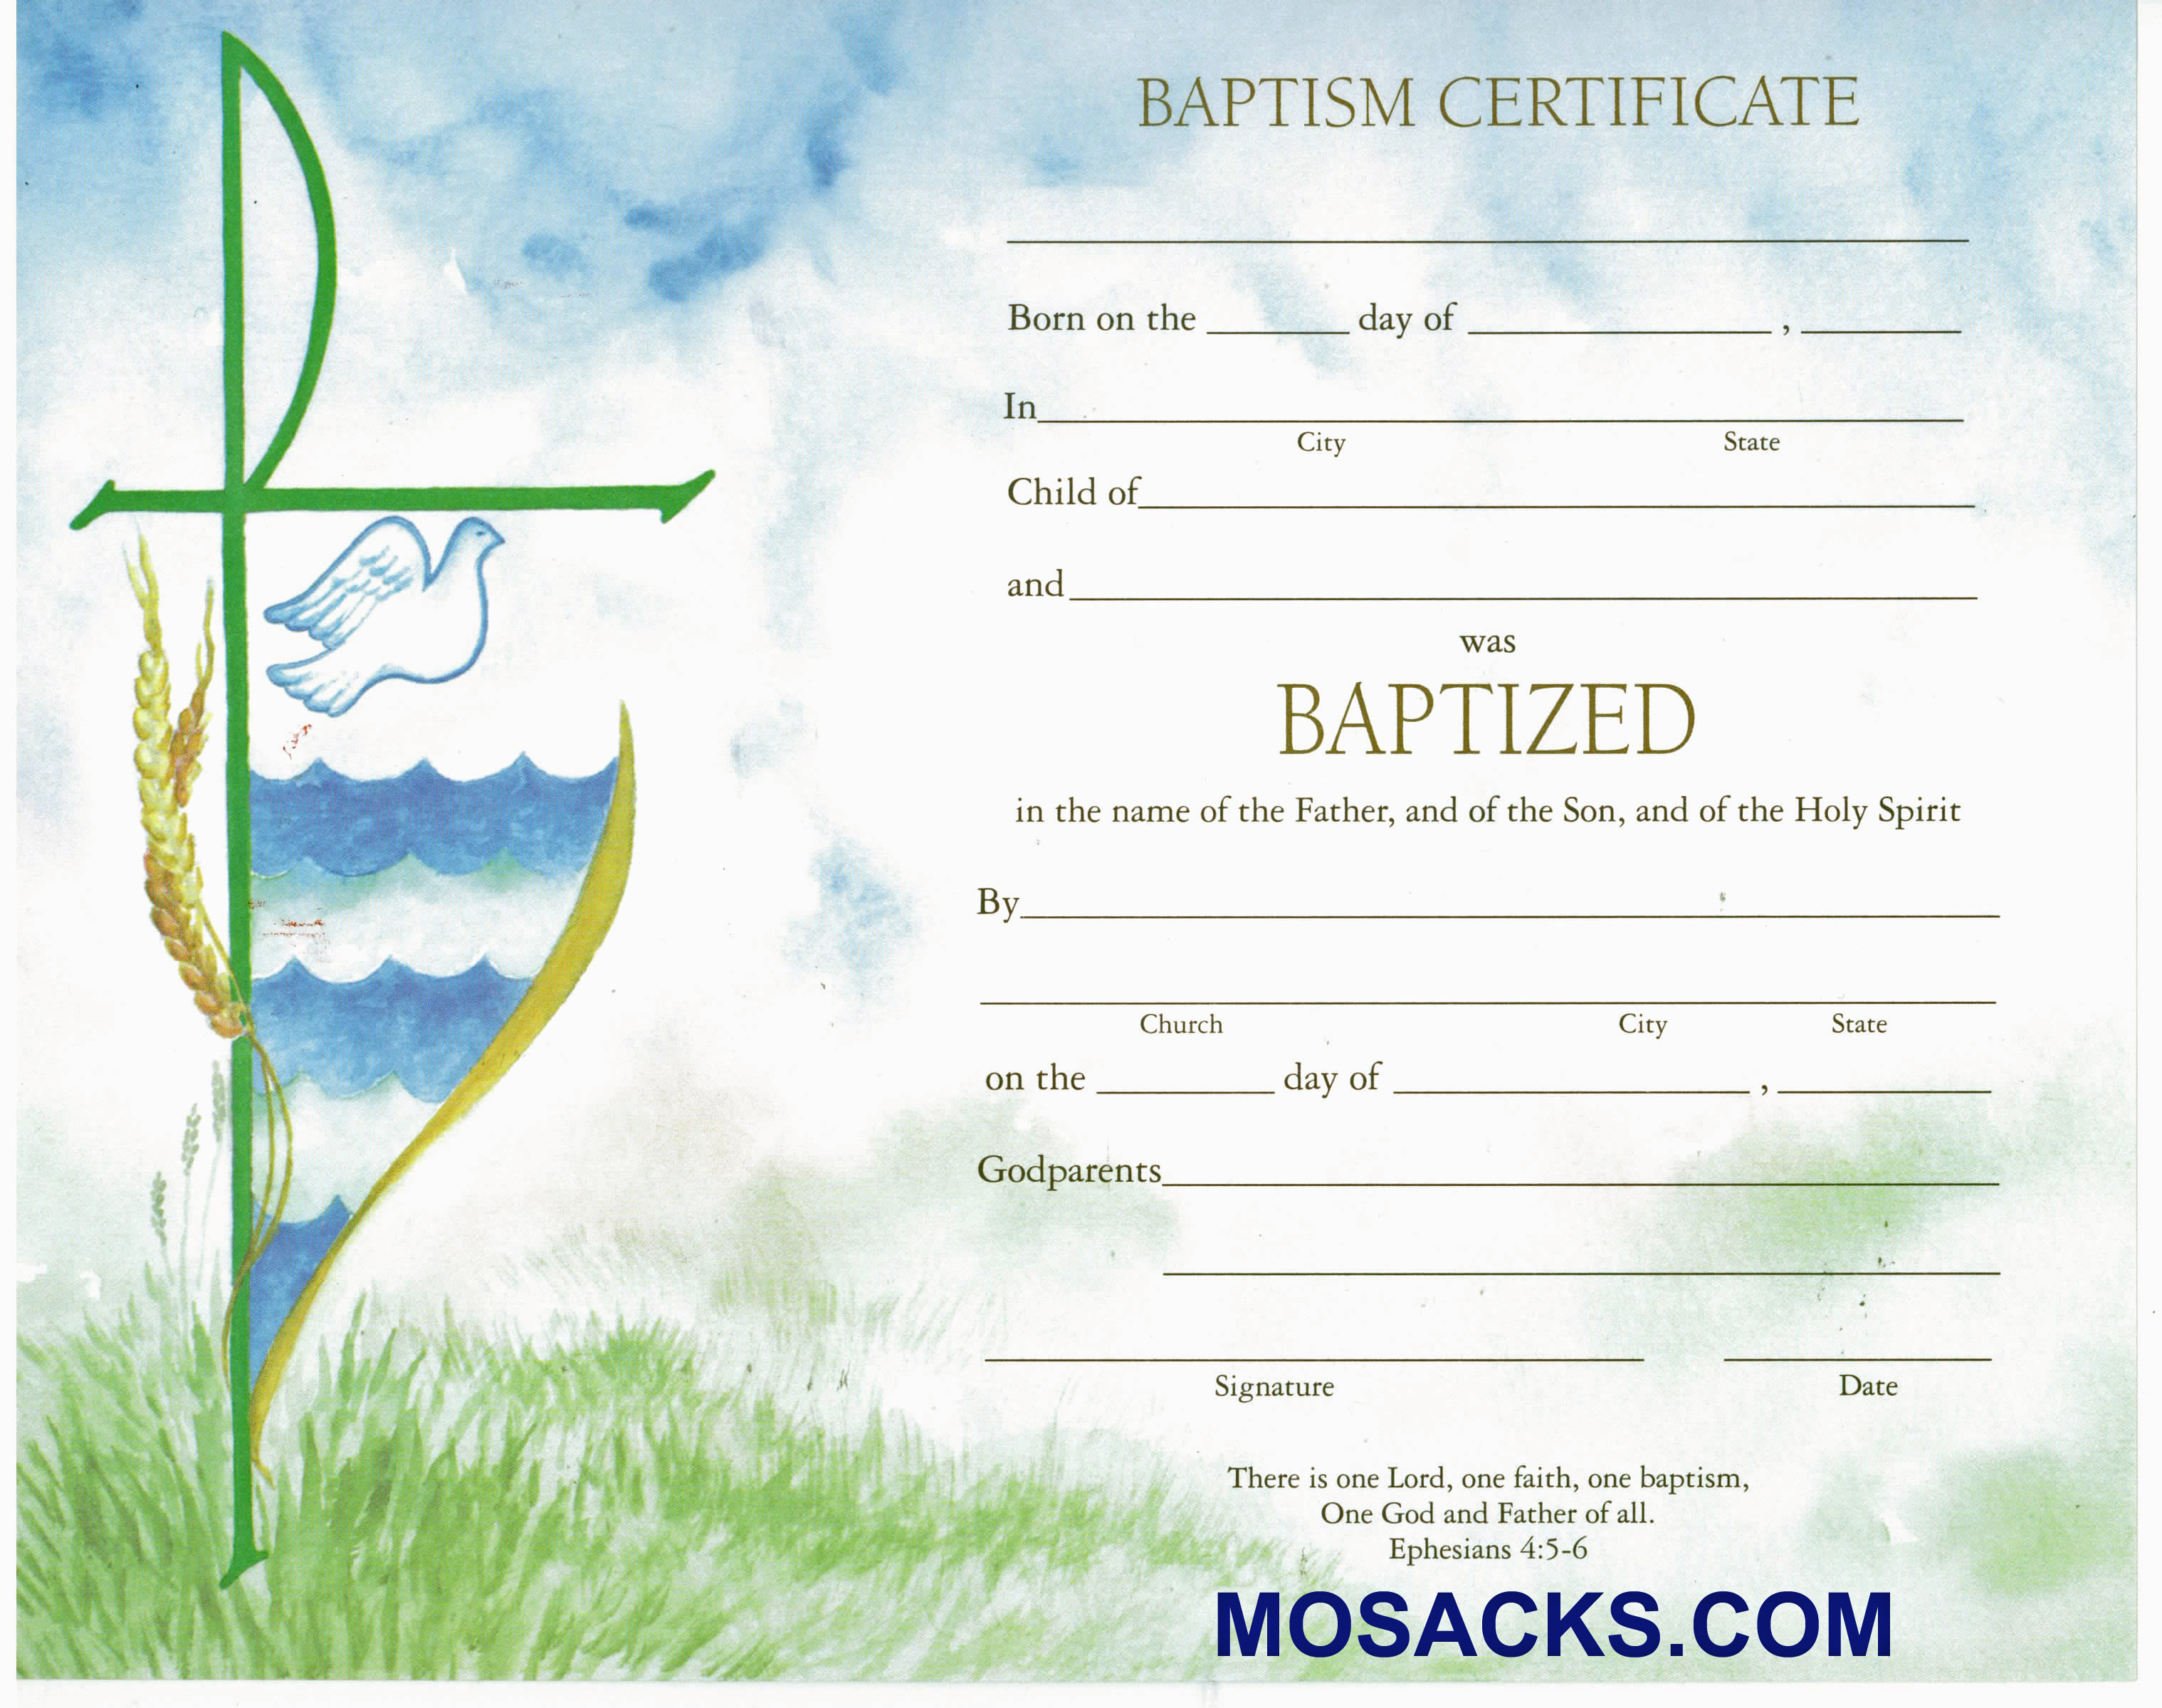 Baptism Certificate-XD102B